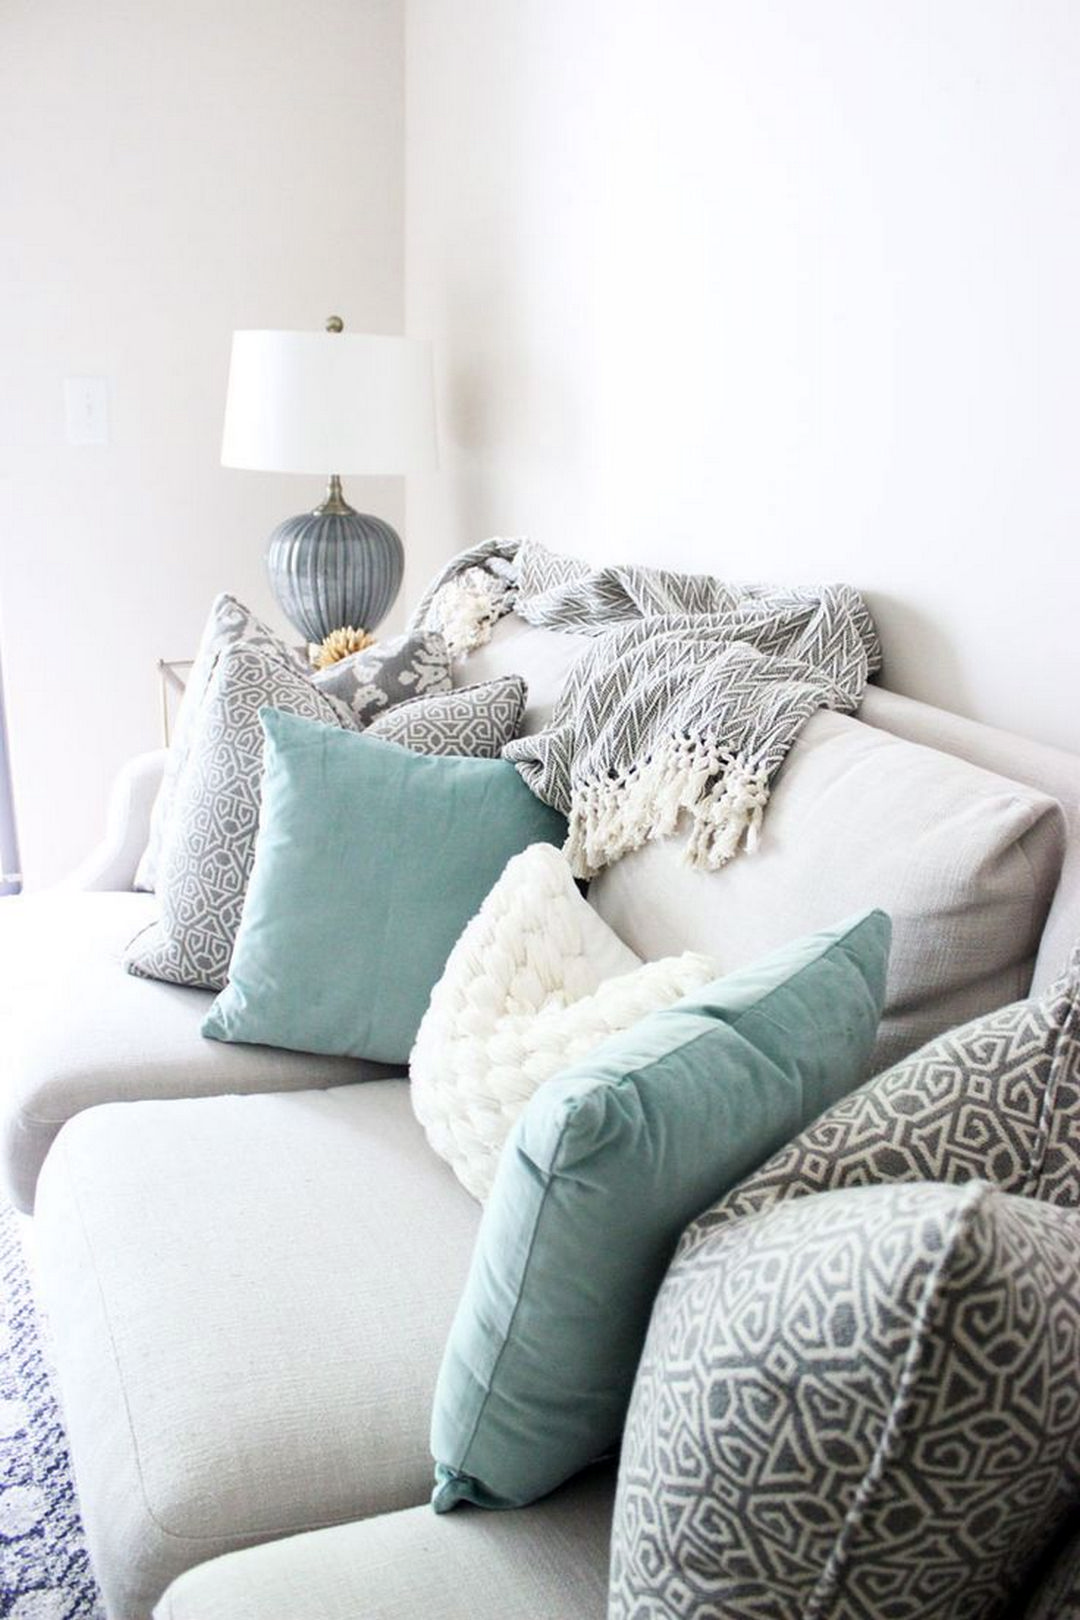 Dhoby Ghaut Green A Wonderful Living Room In The Heart Of The City Living Room Turquoise Living Room Pillows Couch Decor